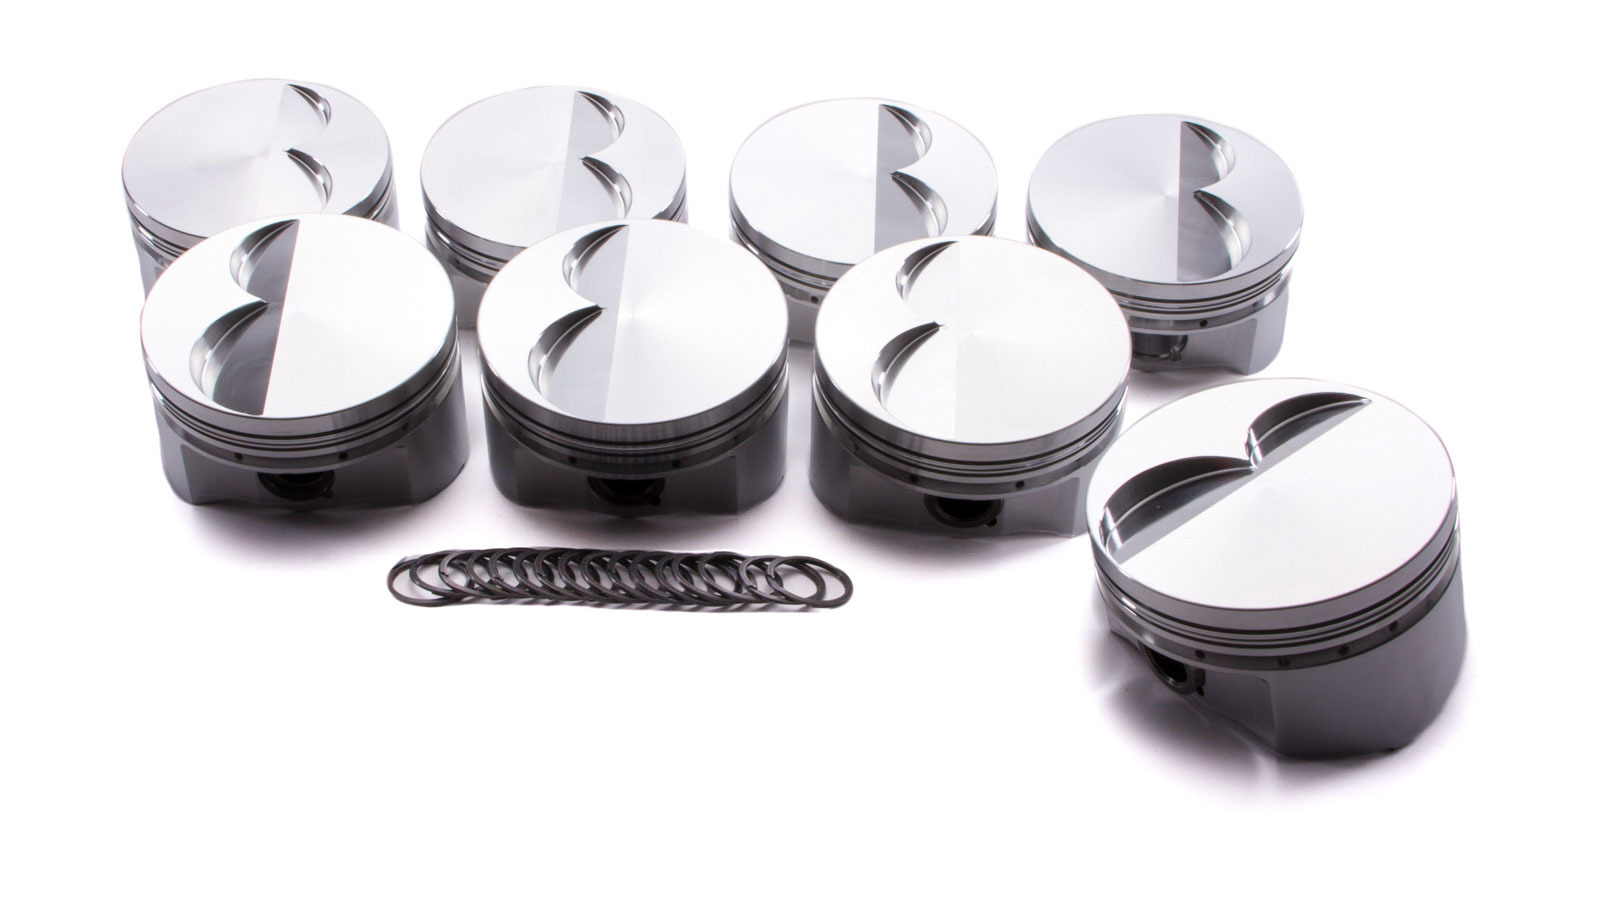 Diamond Racing Products 51013-8 Piston, Street / Strip Flat Top, Forged, 4.100 in Bore, 1/16 x 1/16 x 3/16 in Ring Grooves, Minus 6.8 cc, Small Block Mopar, Set of 8